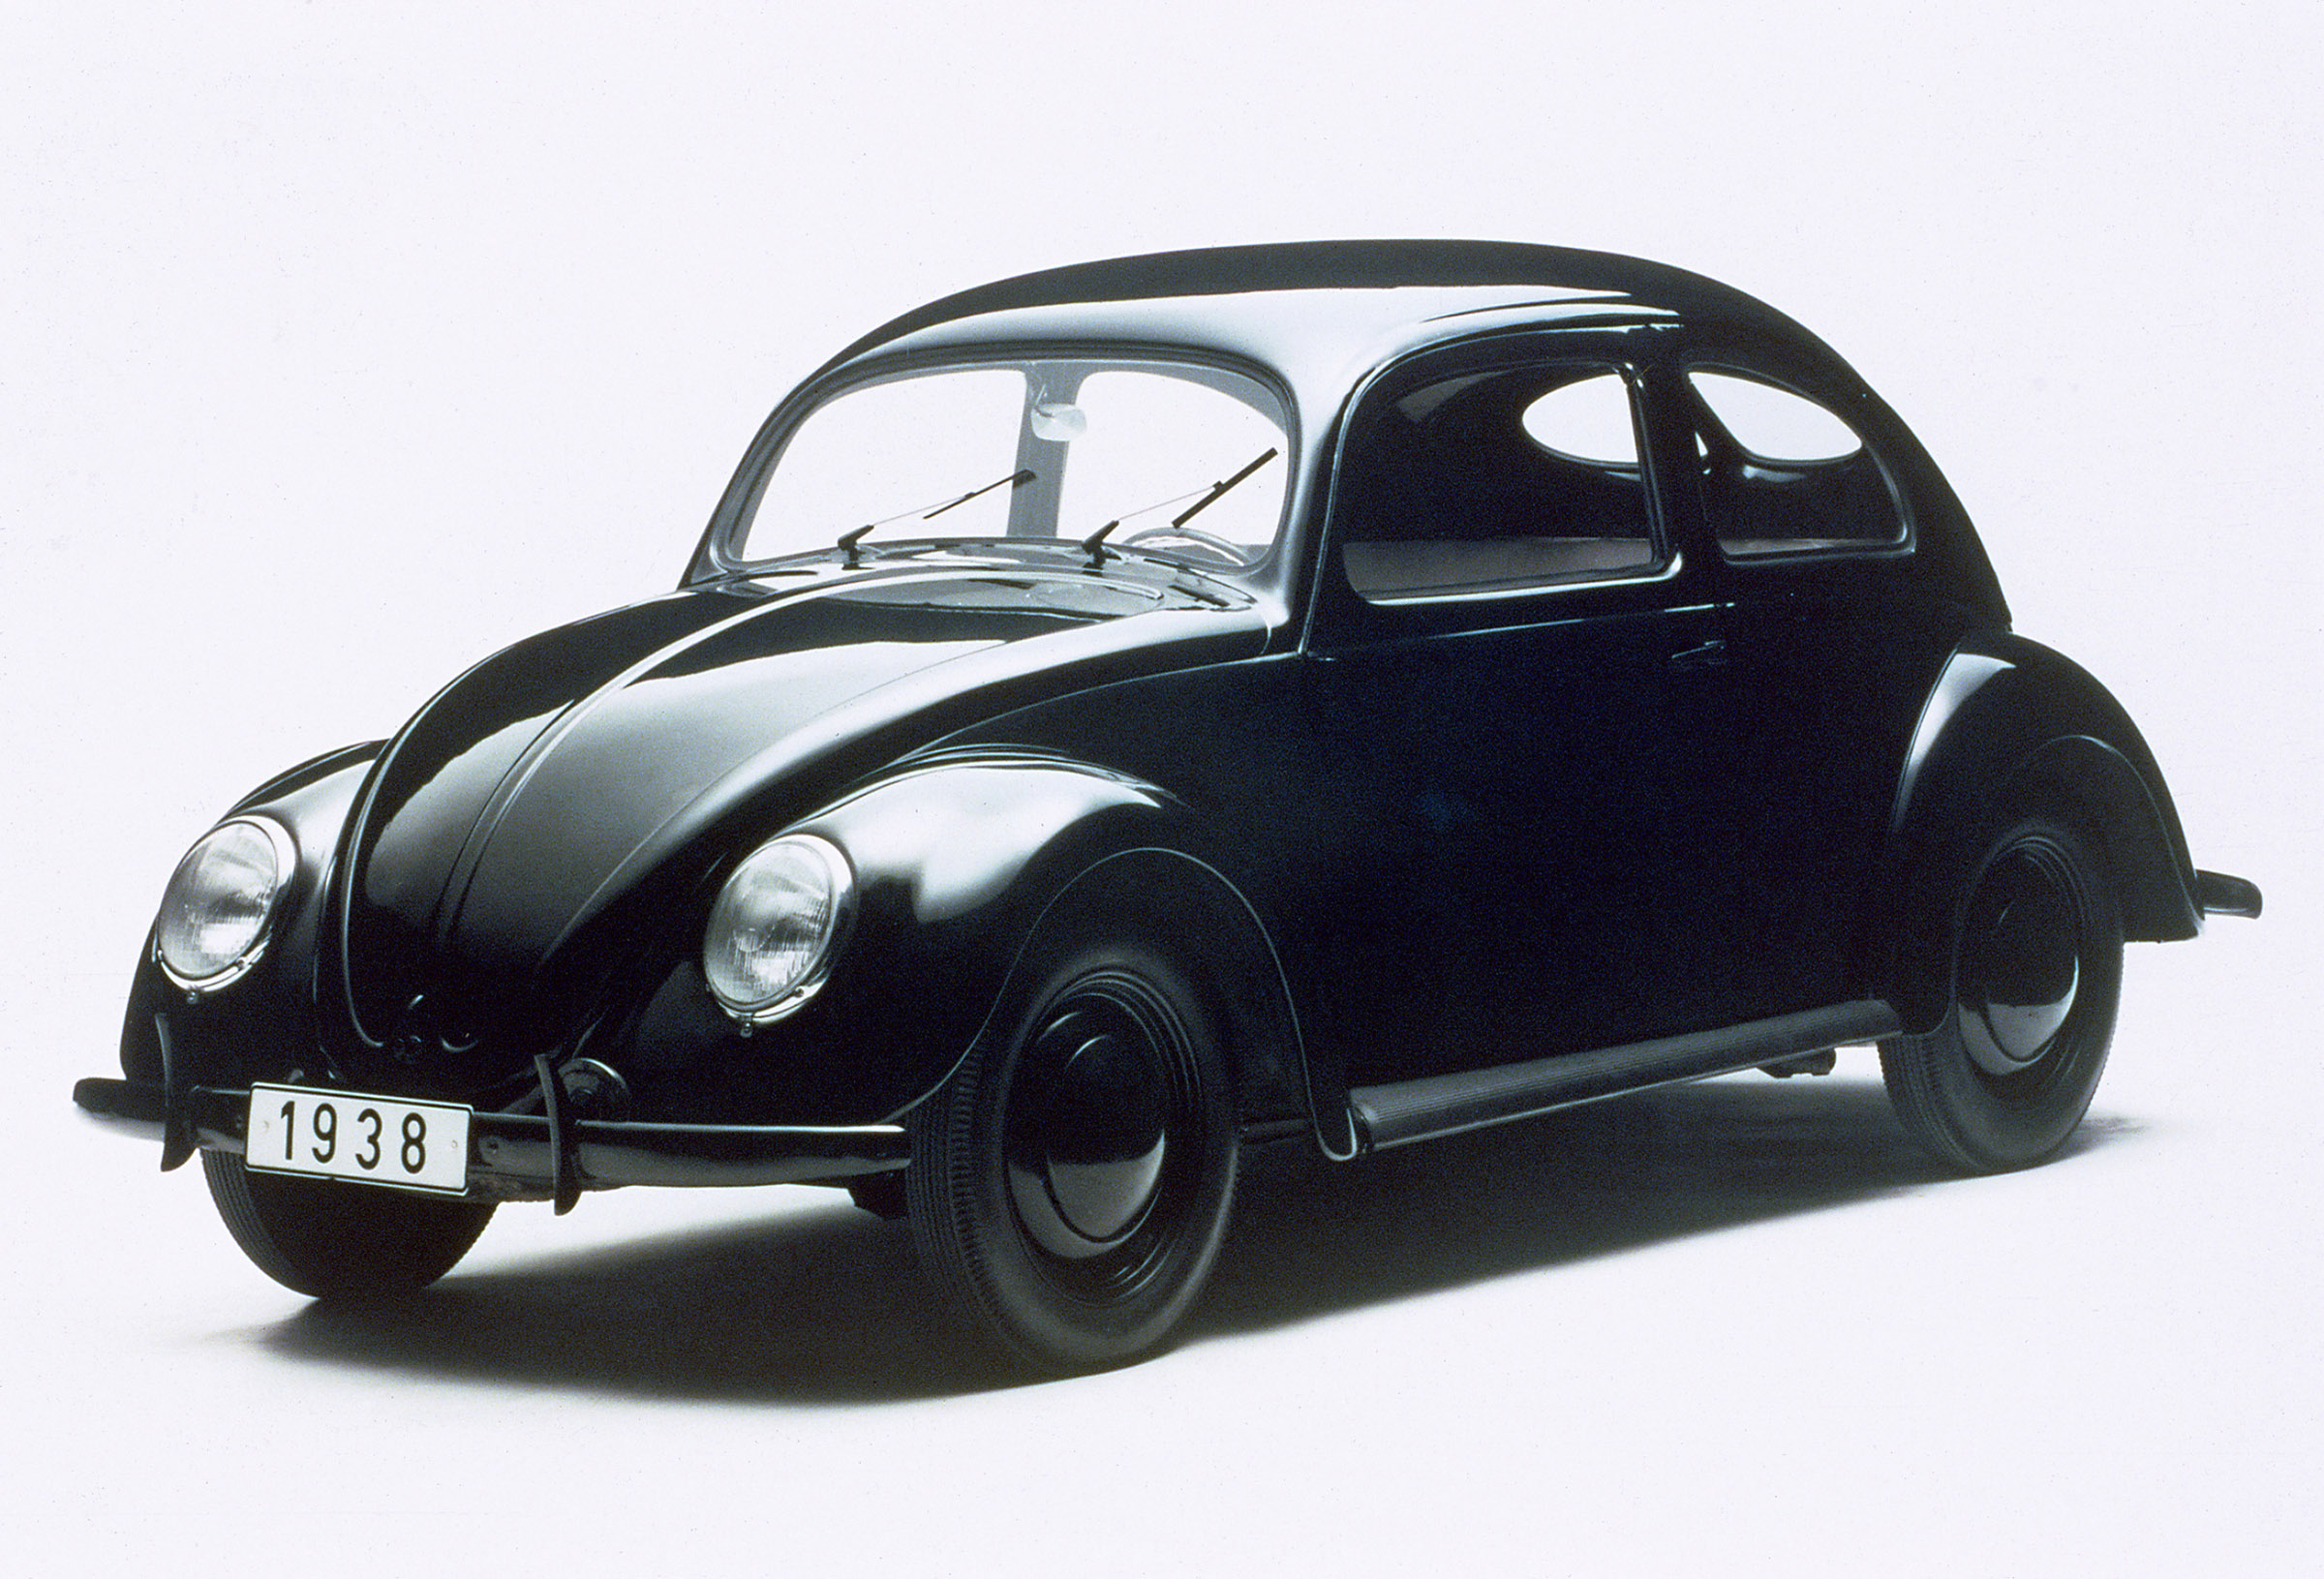 Vw Original Beetle 1938 Picture 14462